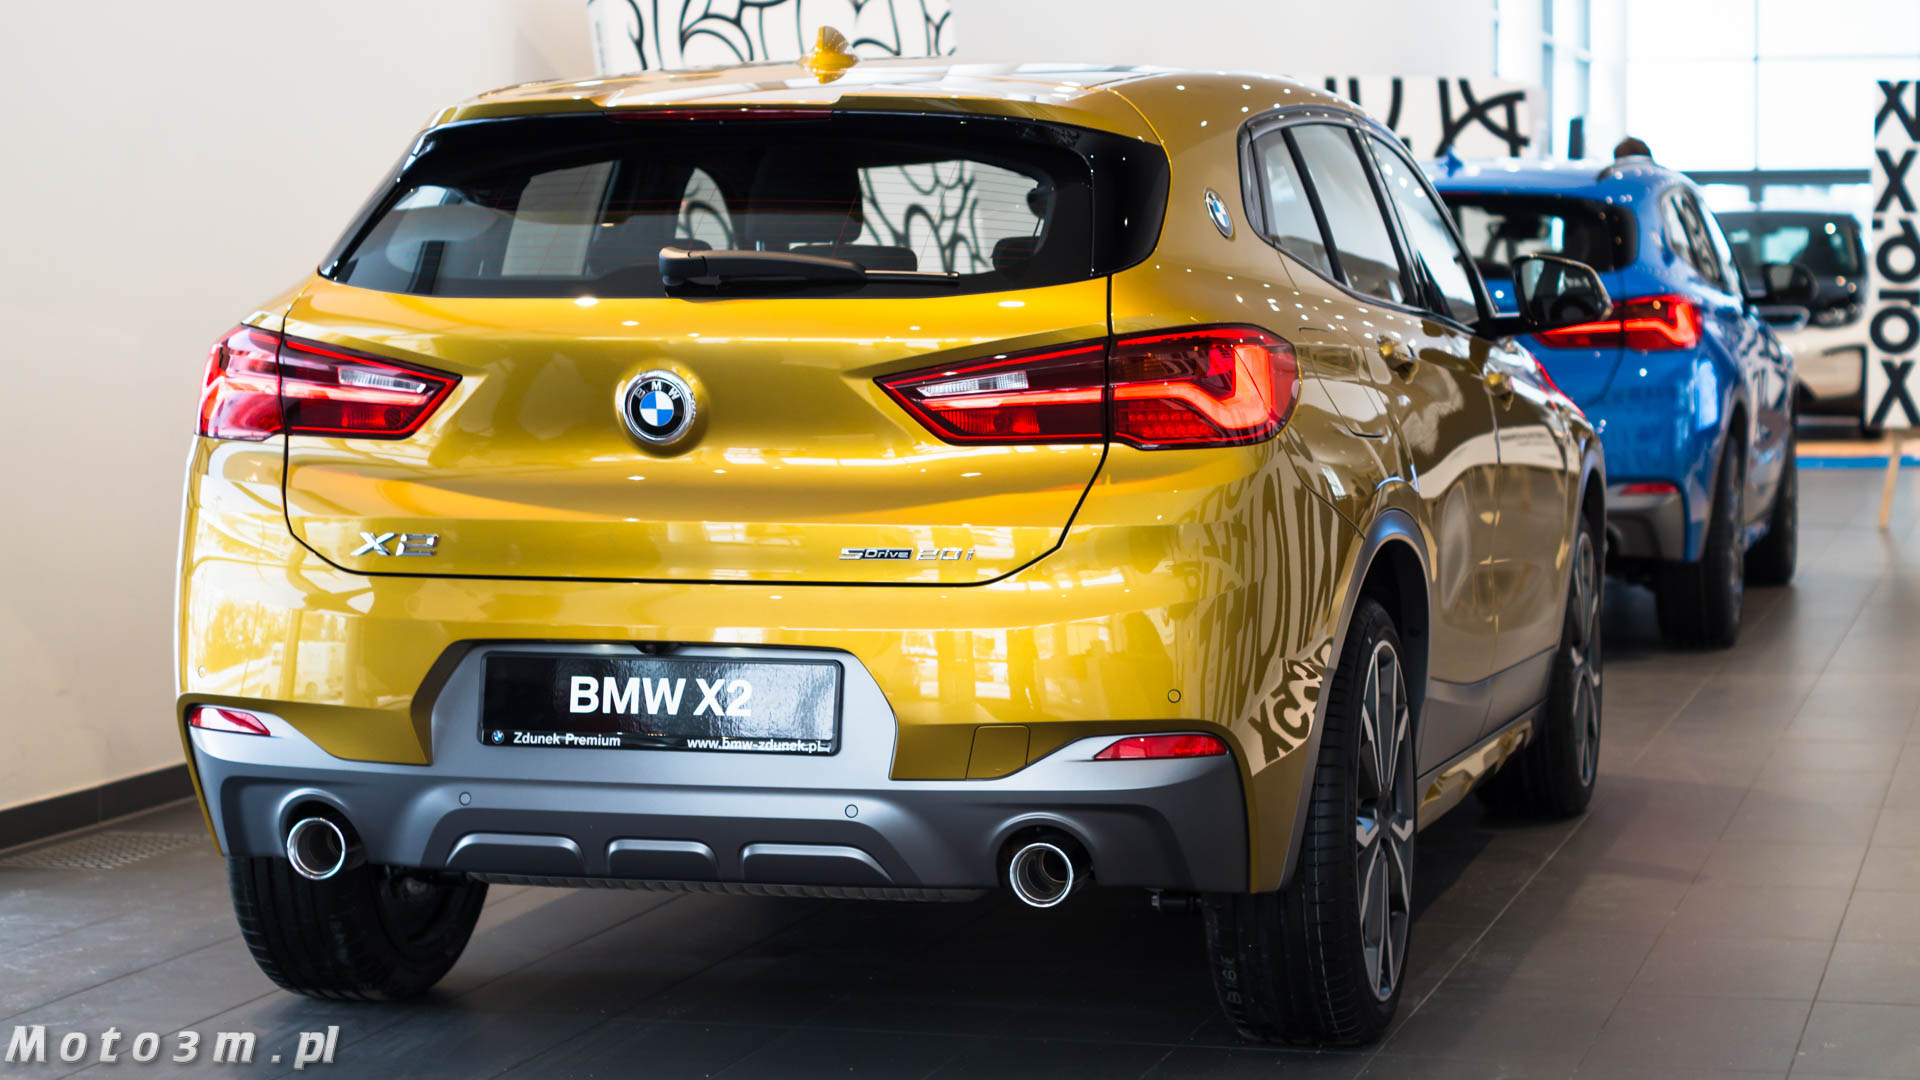 wideo premiera nowego bmw x2 w bmw zdunek w gdyni. Black Bedroom Furniture Sets. Home Design Ideas